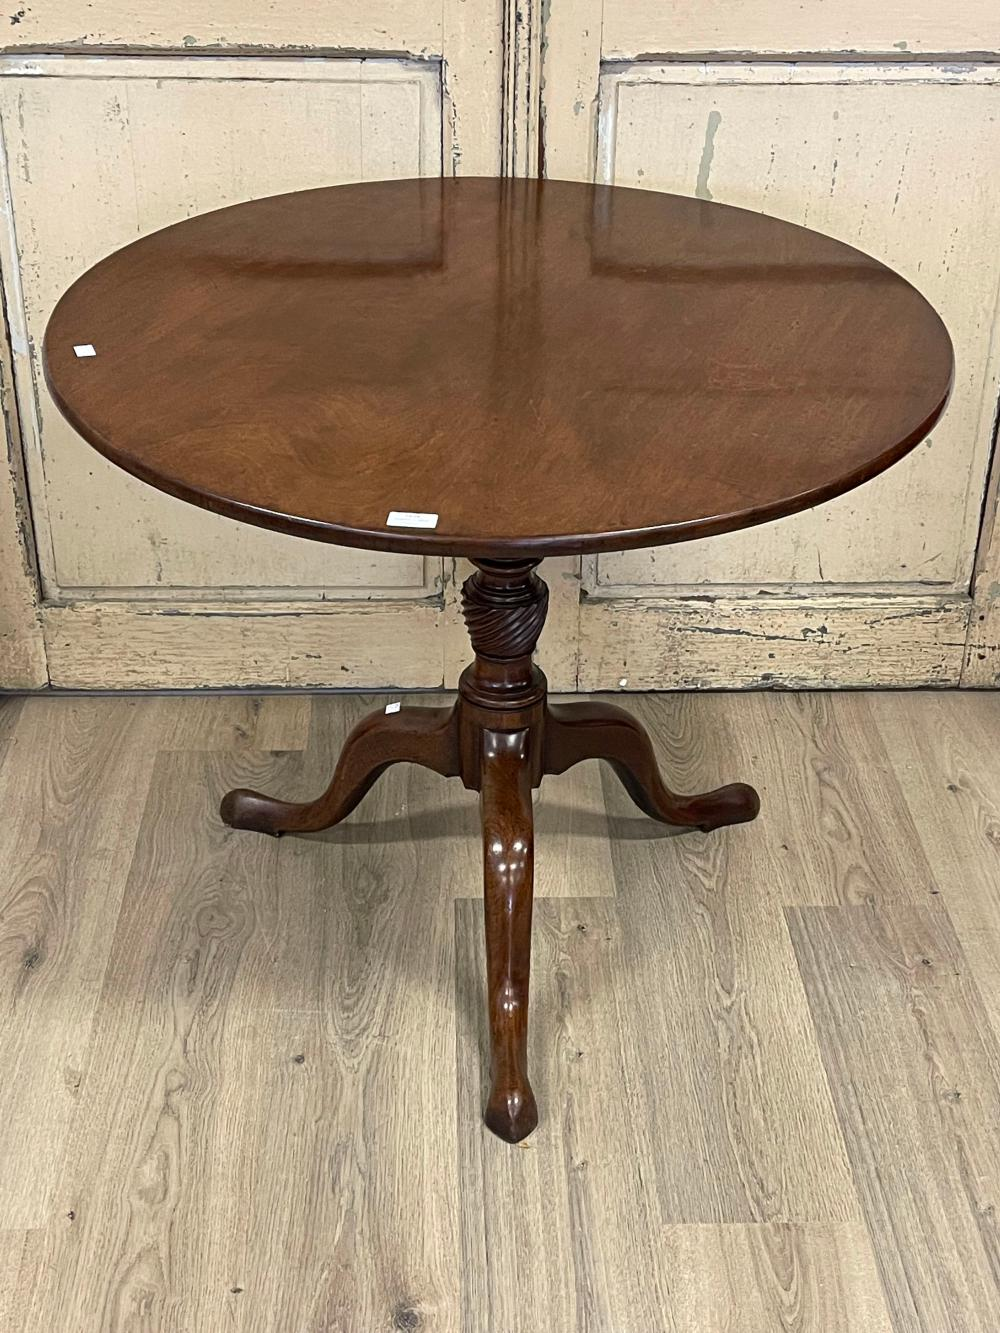 Antique English George III circular snap top tea table, held by a central turned fluted column, approx 88 cm depth x 72 cm high